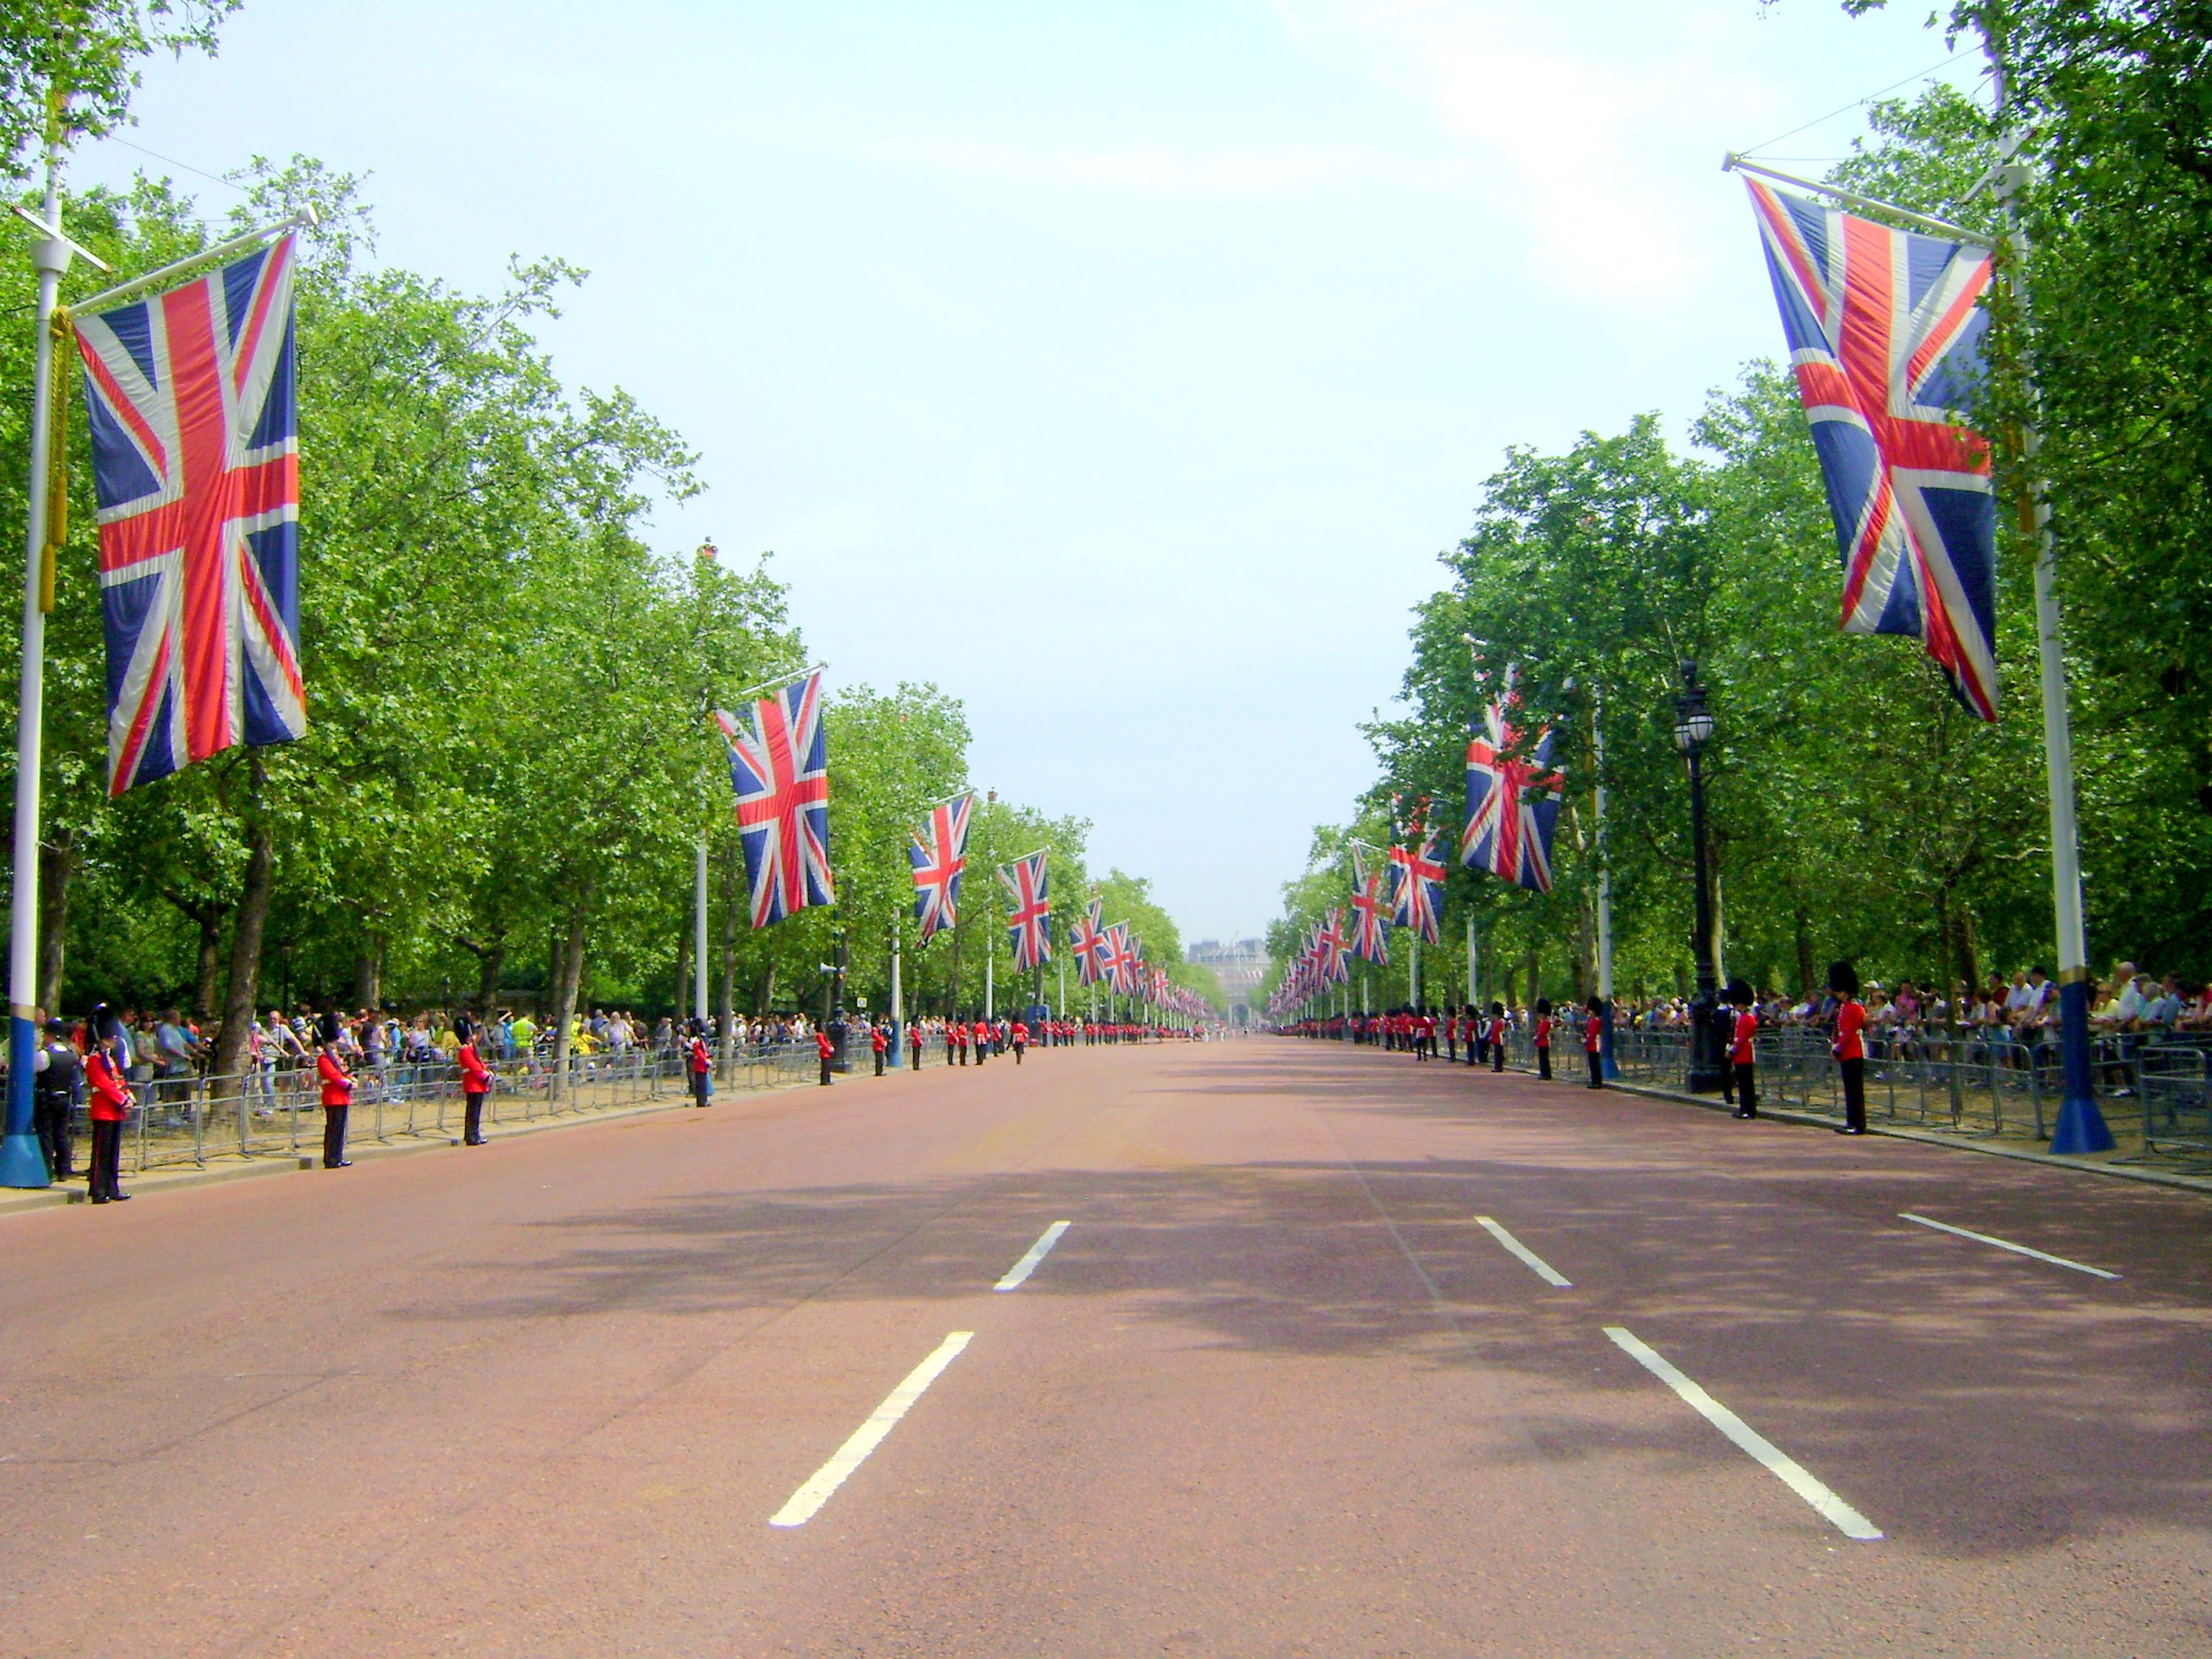 The Buckingham Palace, London, UK